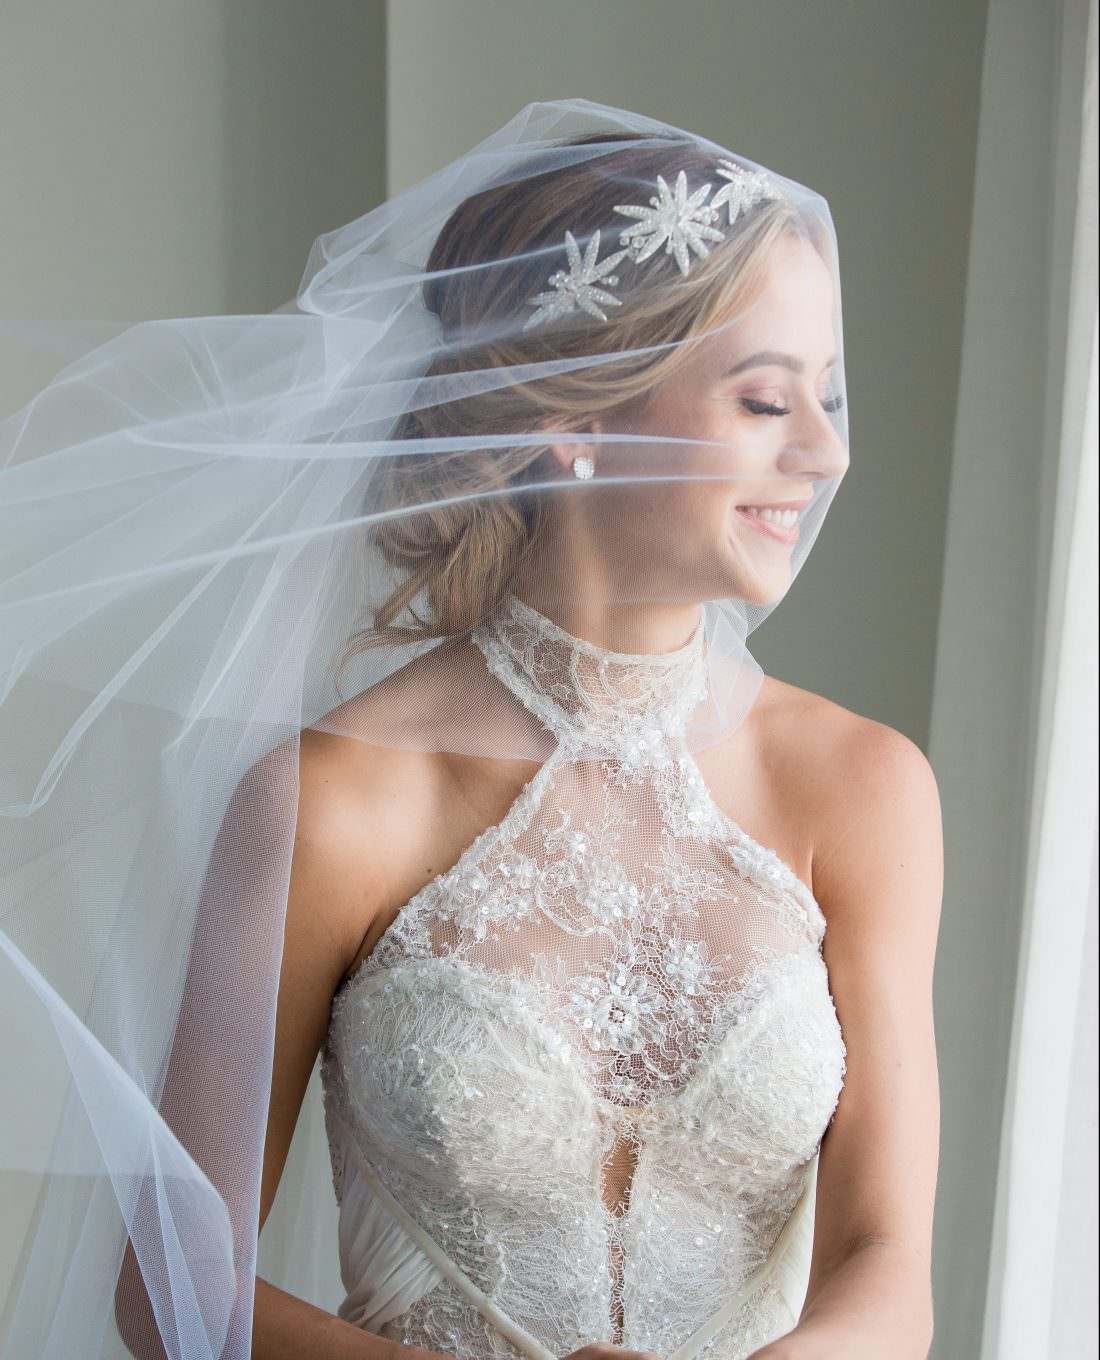 Veil blowing in the wind during a wedding at the SLS in Baha Mar in the Bahamas.